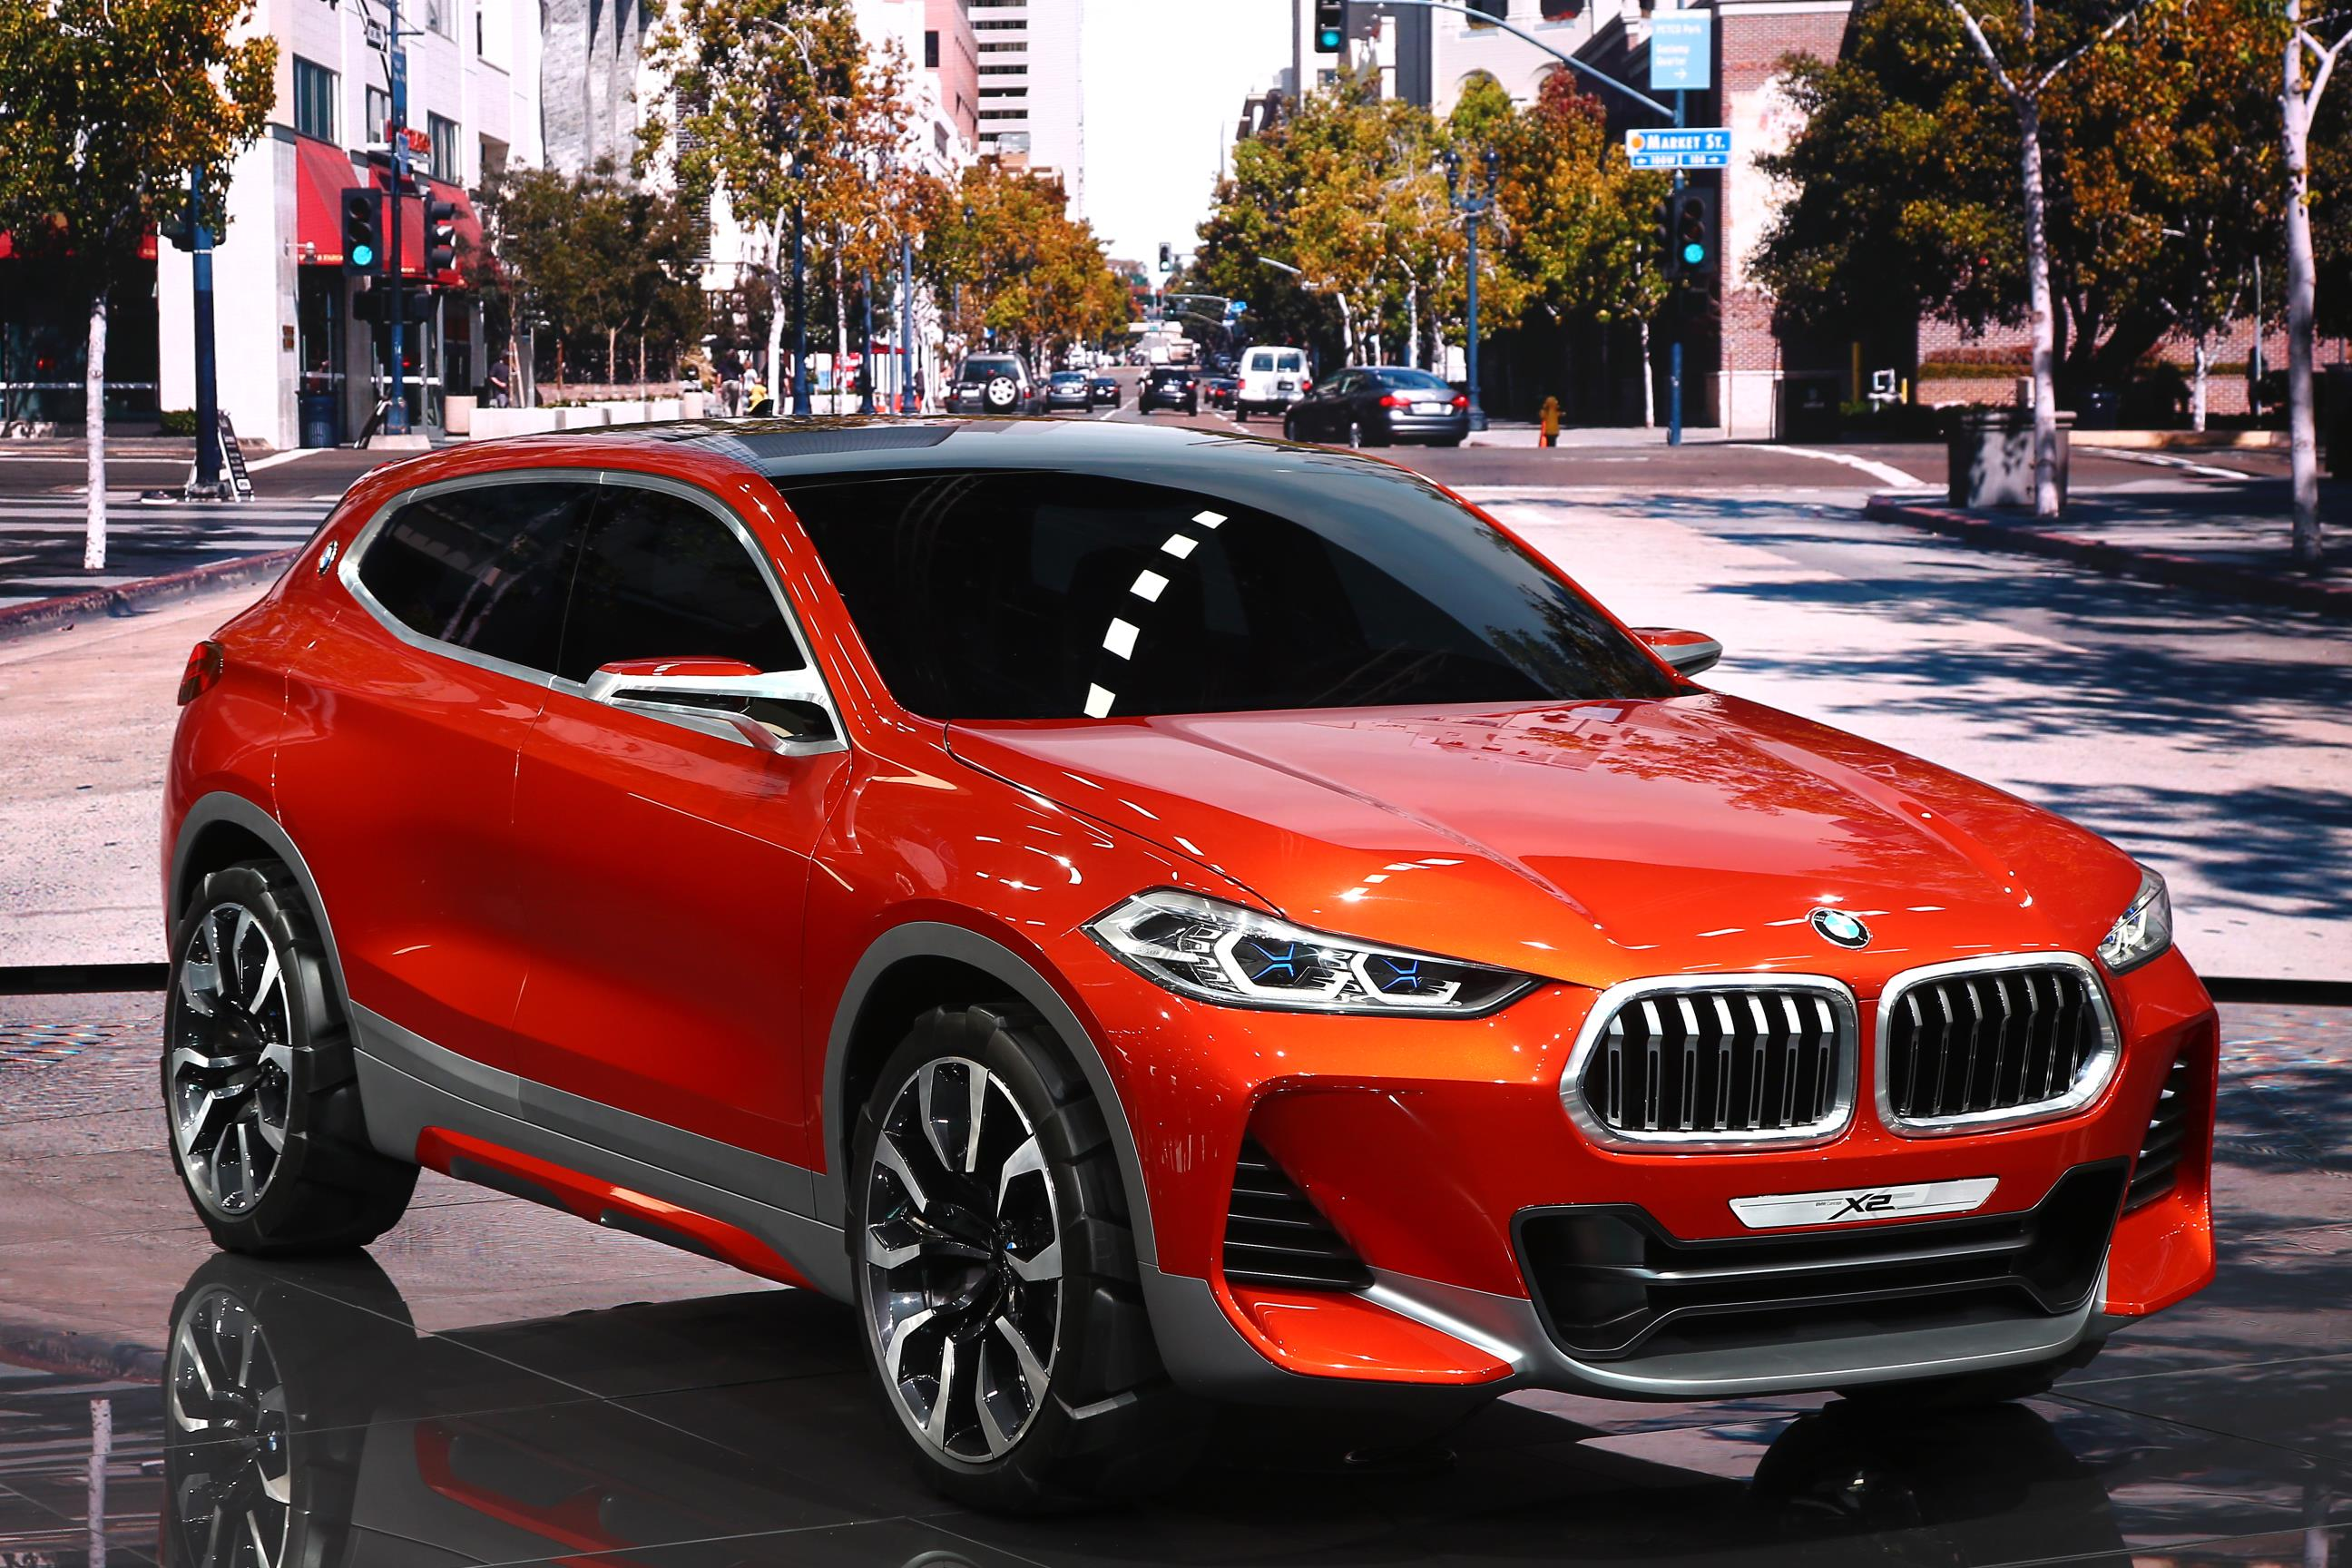 The BMW X2 Concept